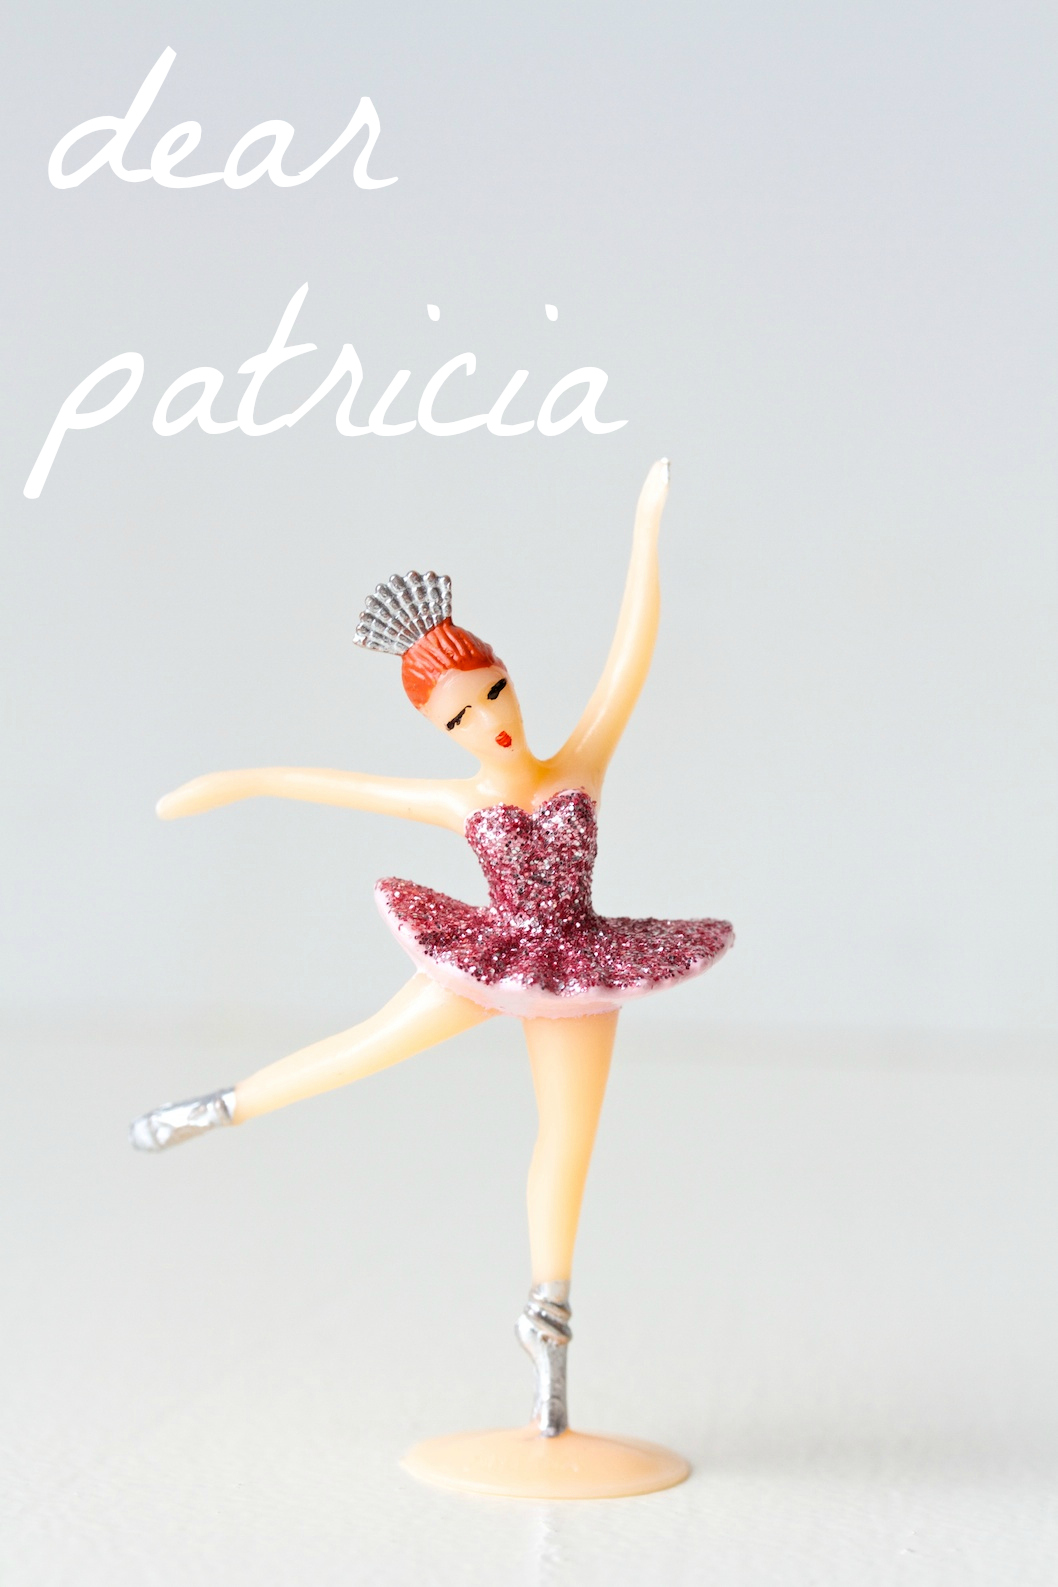 dear patricia |movita beaucoup